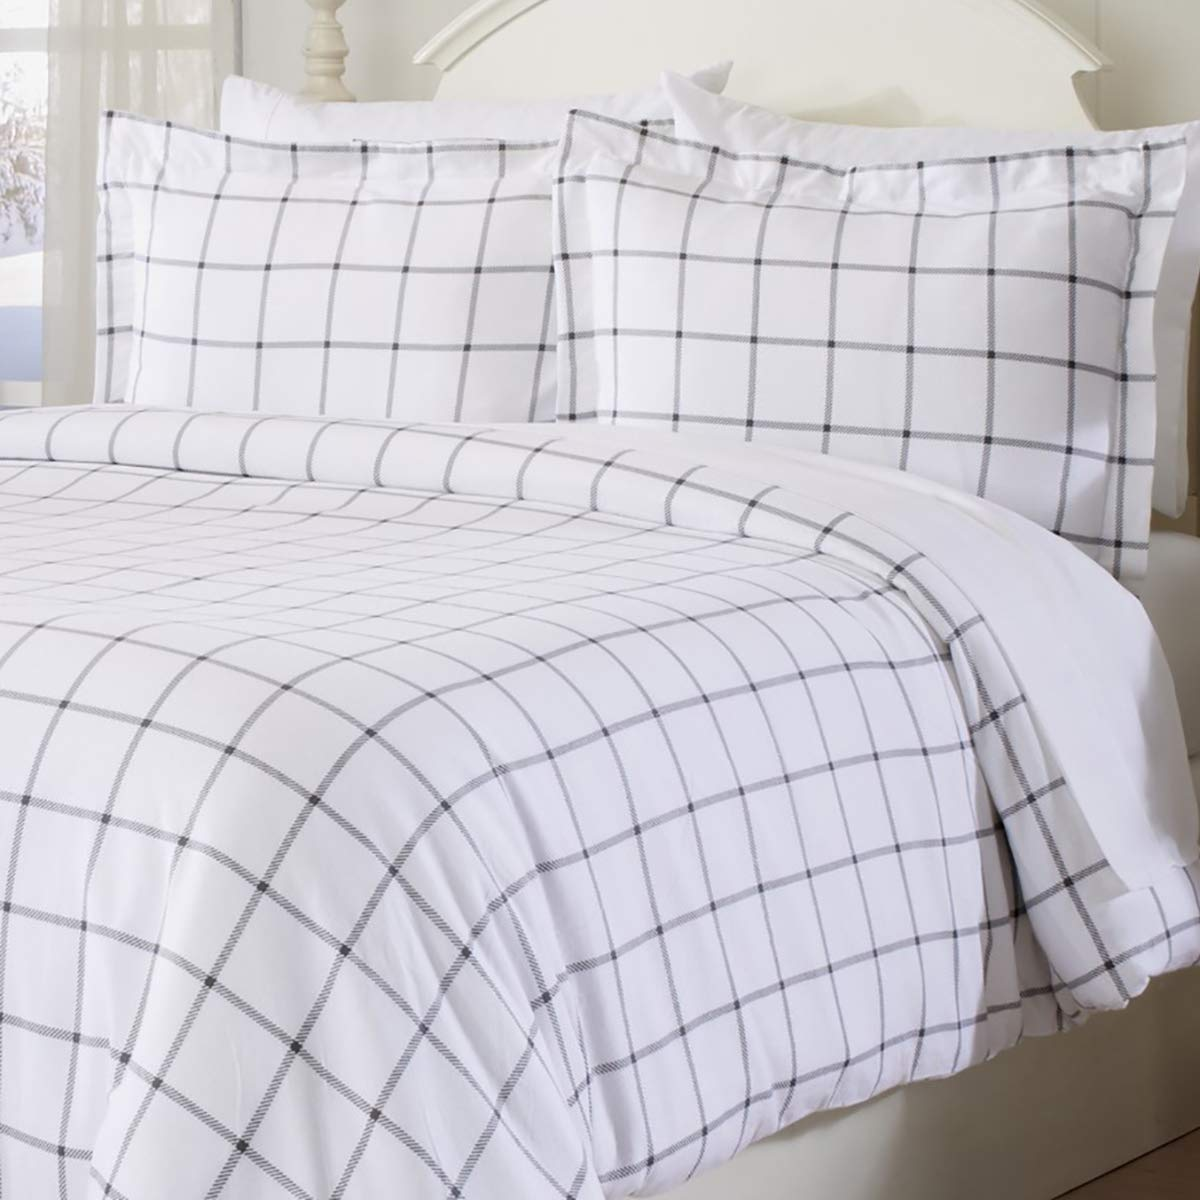 Extra Soft Printed Flannel Duvet Cover with Button Closure. 100% Turkish Cotton 3-Piece Set with Pillow Shams. Belle Collection (Twin, Windowpane - White/Grey)